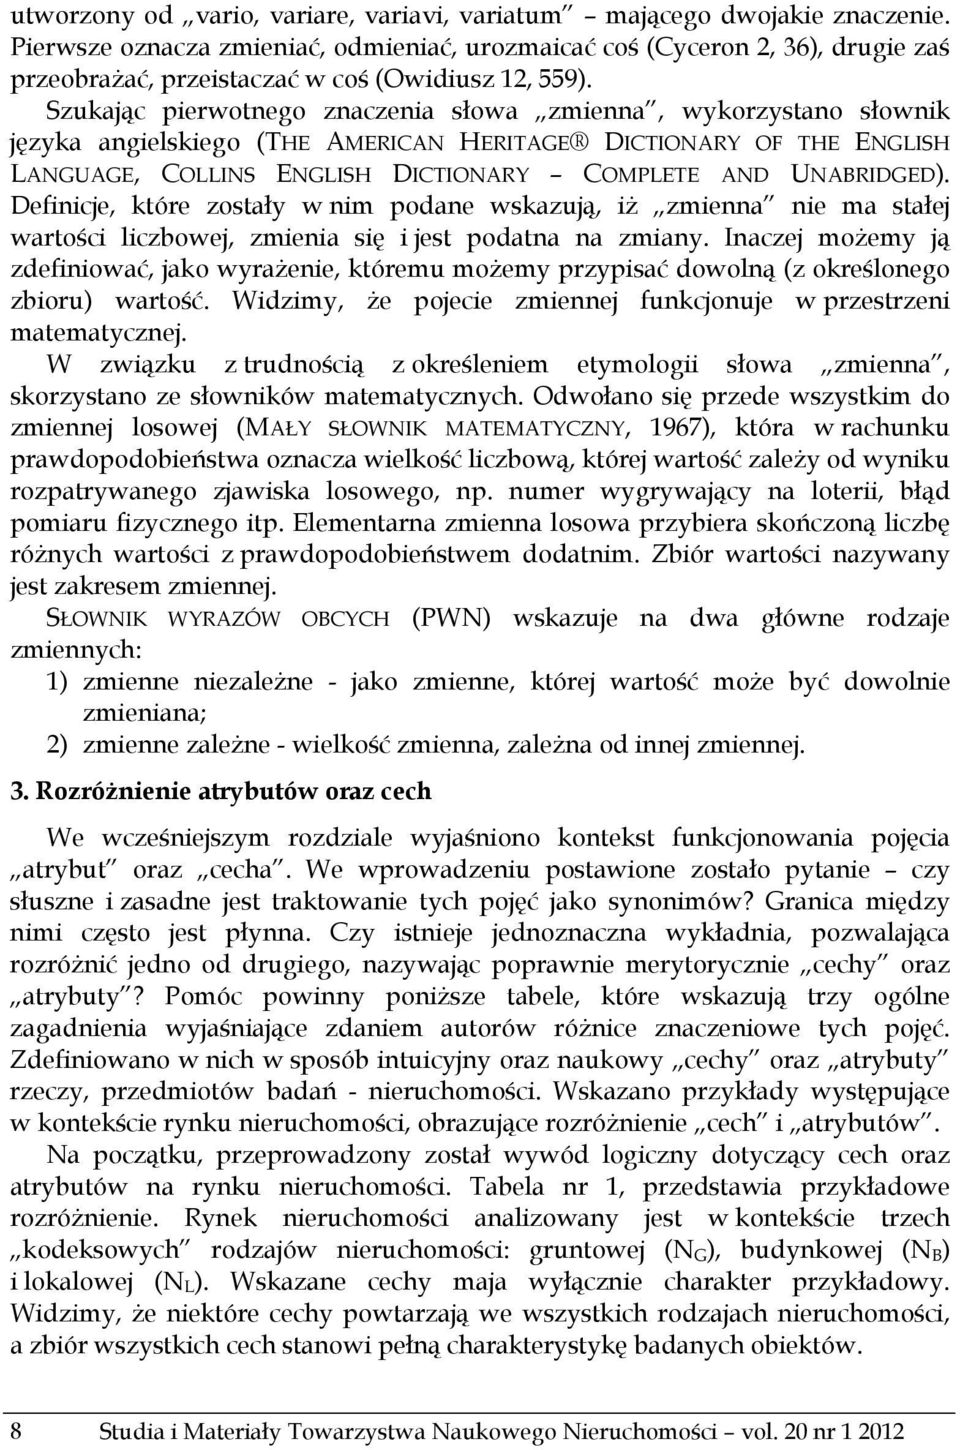 Szukając pierwotnego znaczenia słowa zmienna, wykorzystano słownik języka angielskiego (THE AMERICAN HERITAGE DICTIONARY OF THE ENGLISH LANGUAGE, COLLINS ENGLISH DICTIONARY COMPLETE AND UNABRIDGED).